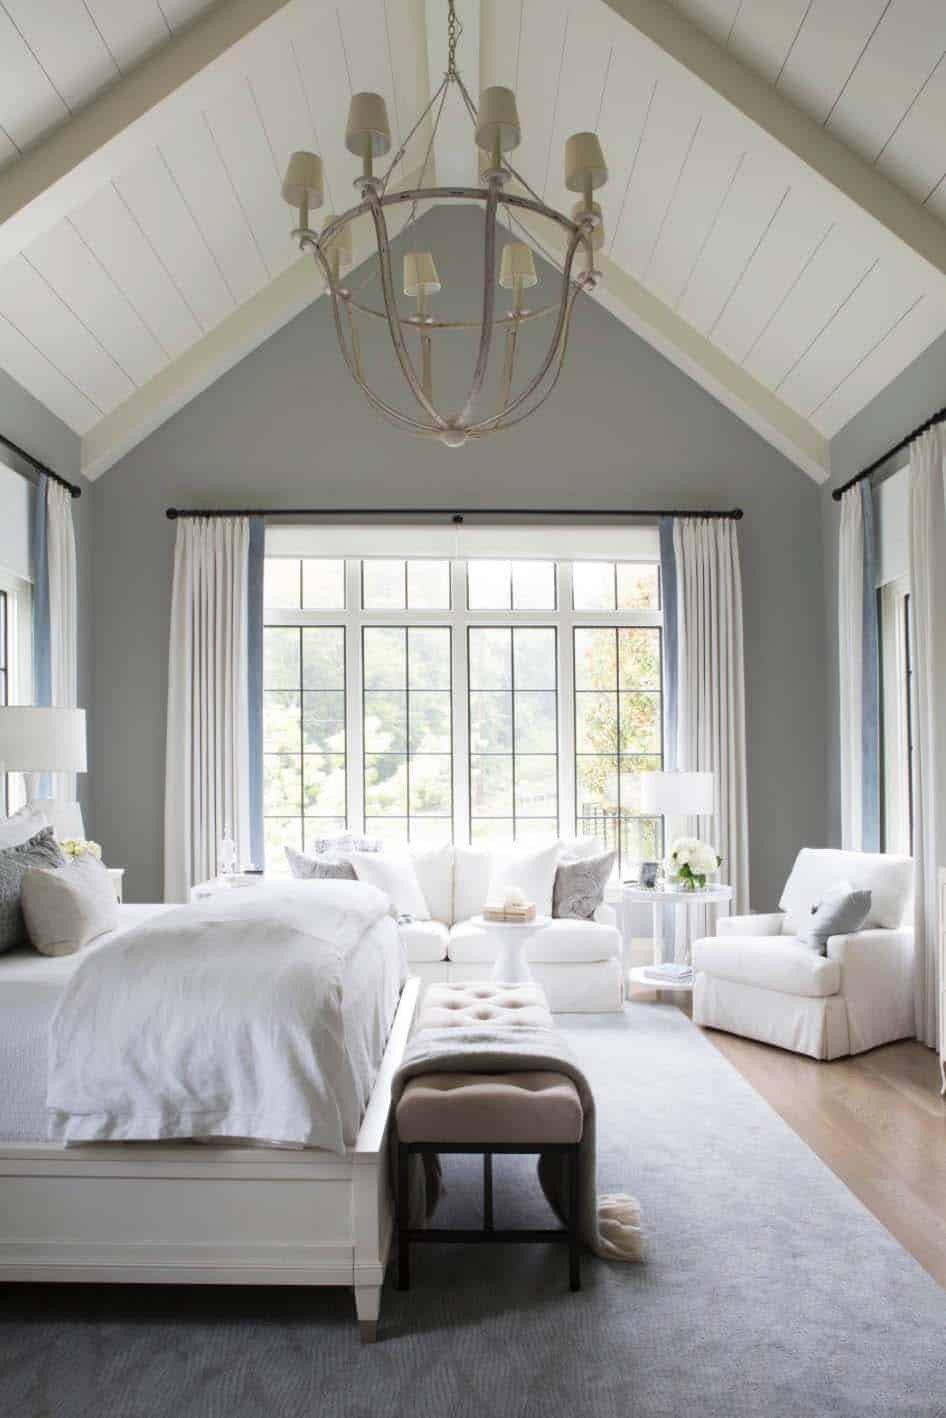 Decor Ideas for Master Bedroom Inspirational 20 Serene and Elegant Master Bedroom Decorating Ideas